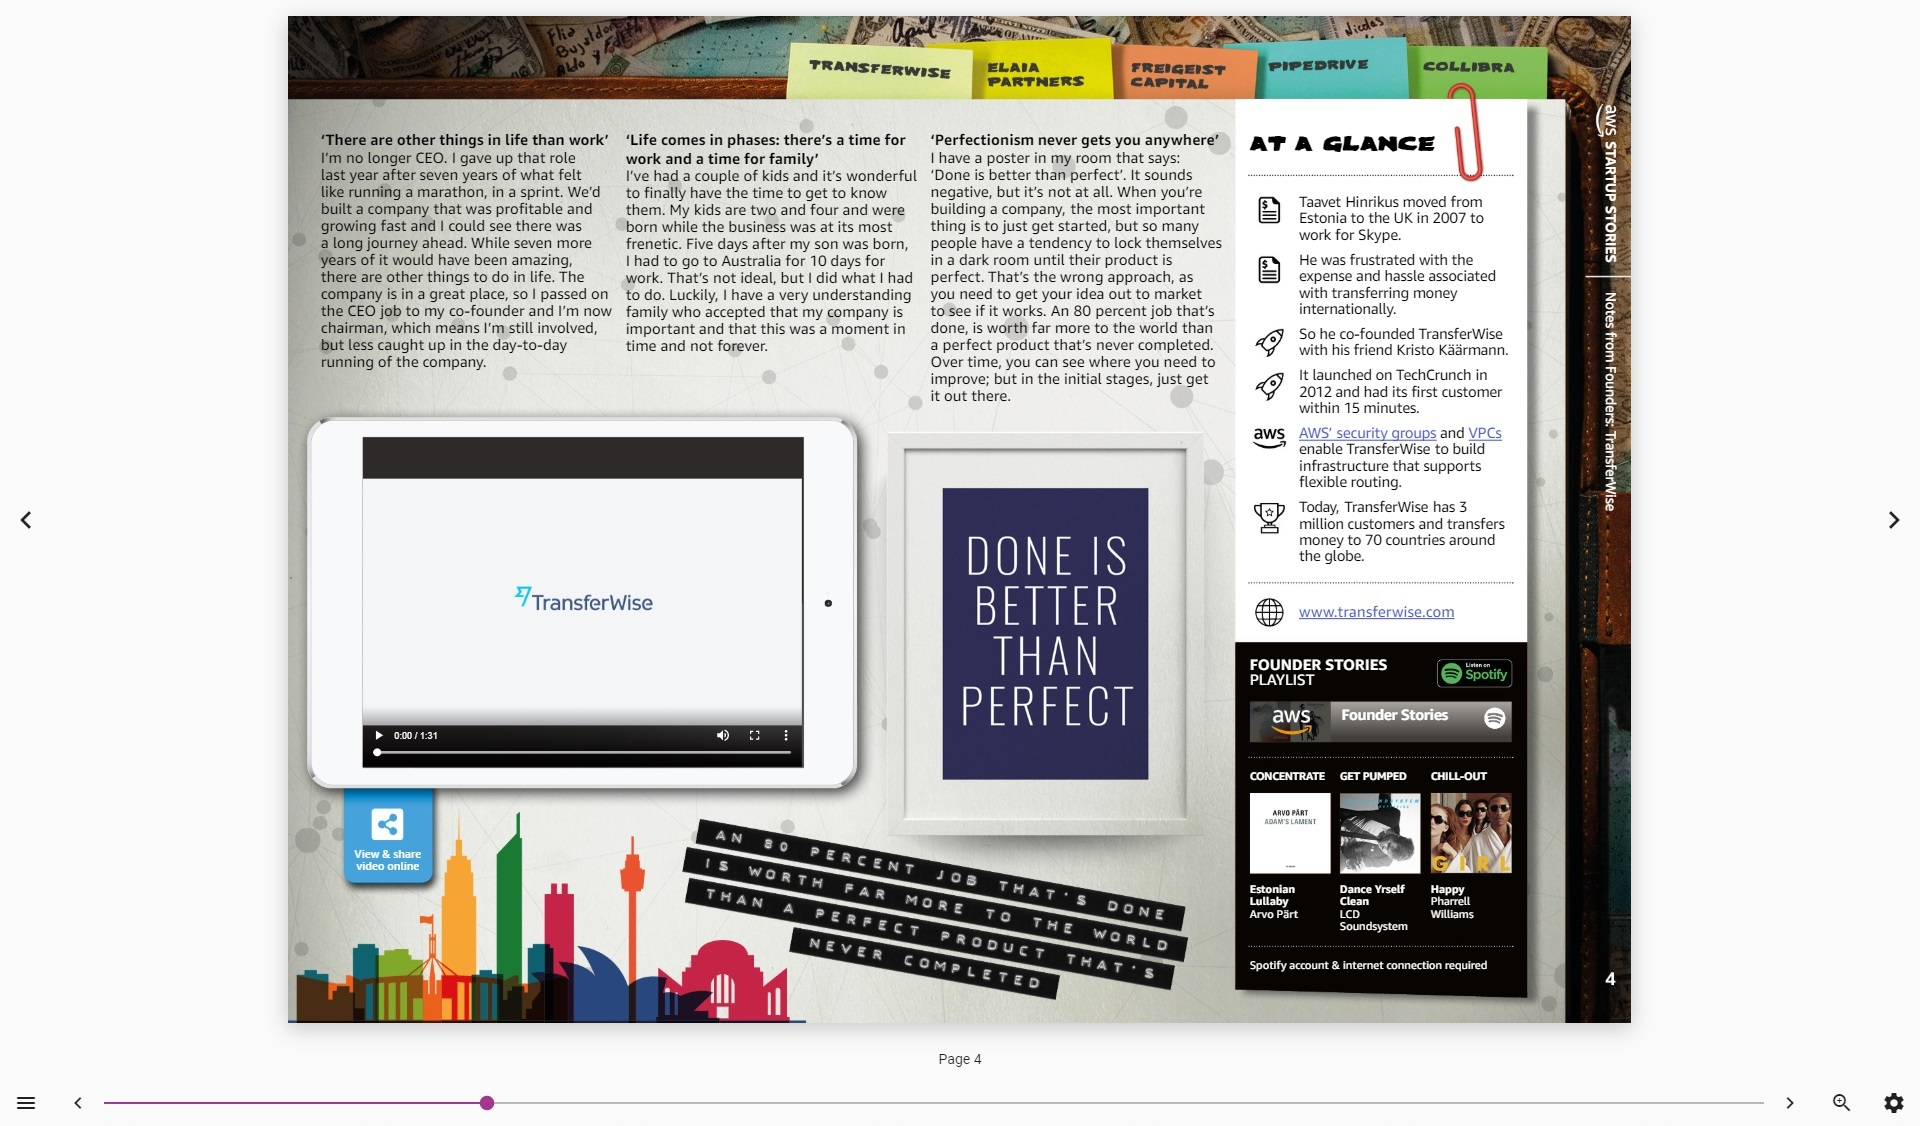 A screenshot of a fixed layout EPUB3 as displayed in the Colibrio reader. The document contains interactive features such as video and integrated Spotify playback.